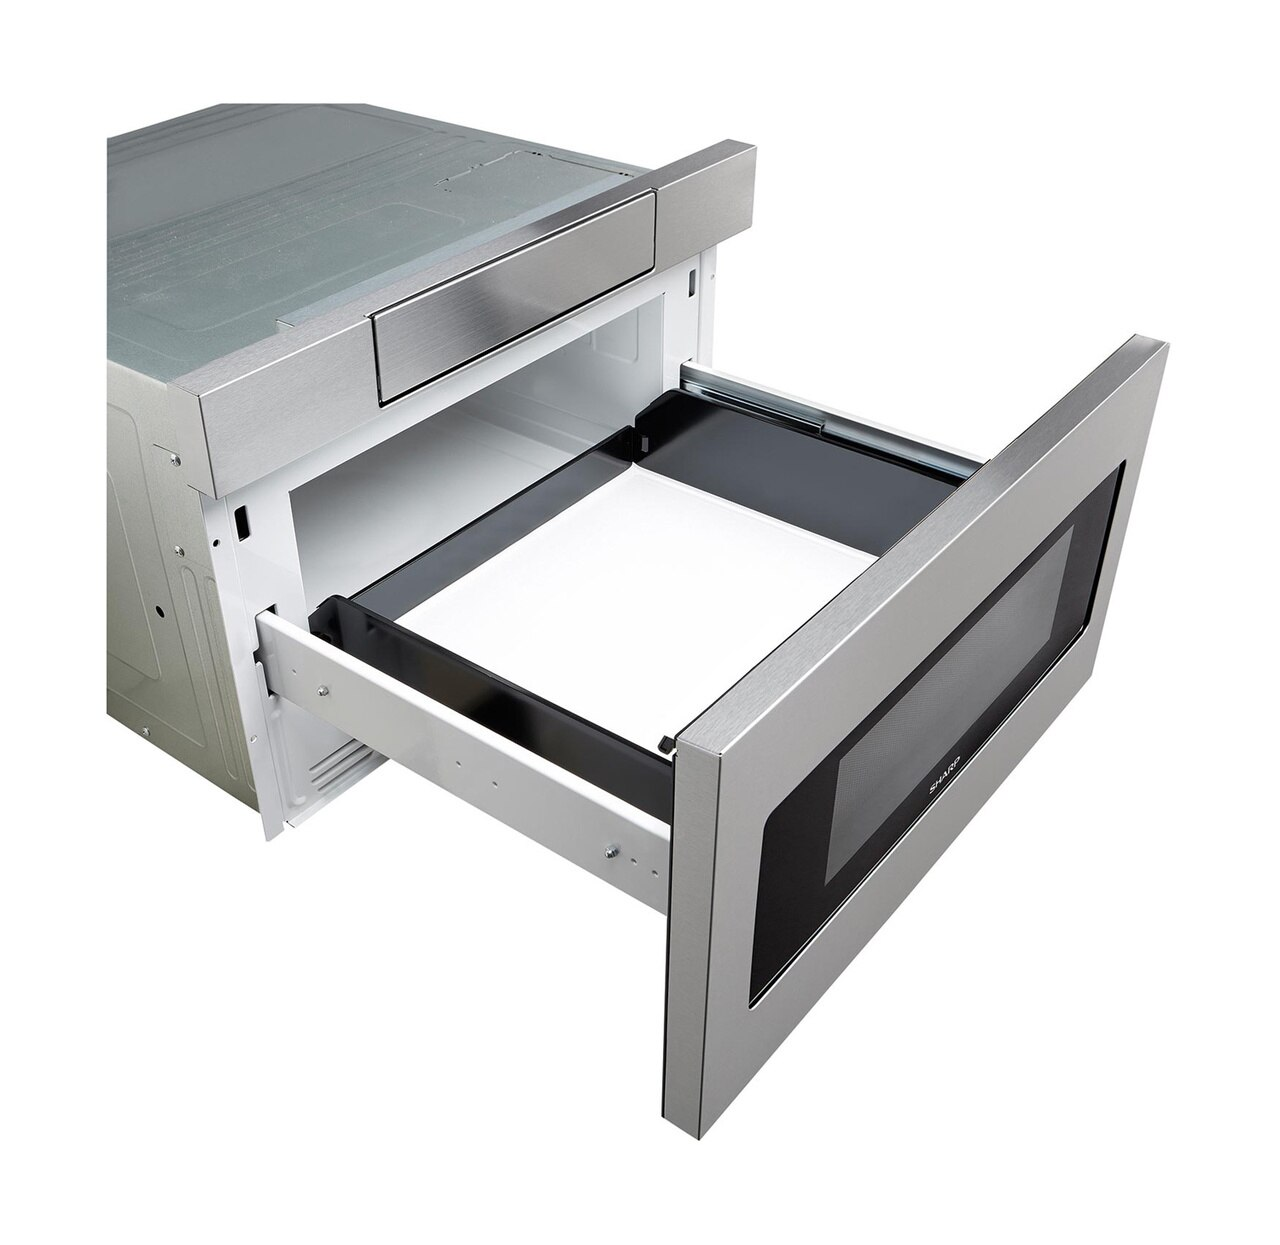 30-inch Sharp Microwave Drawer (SMD3070AS) – angled right, open drawer